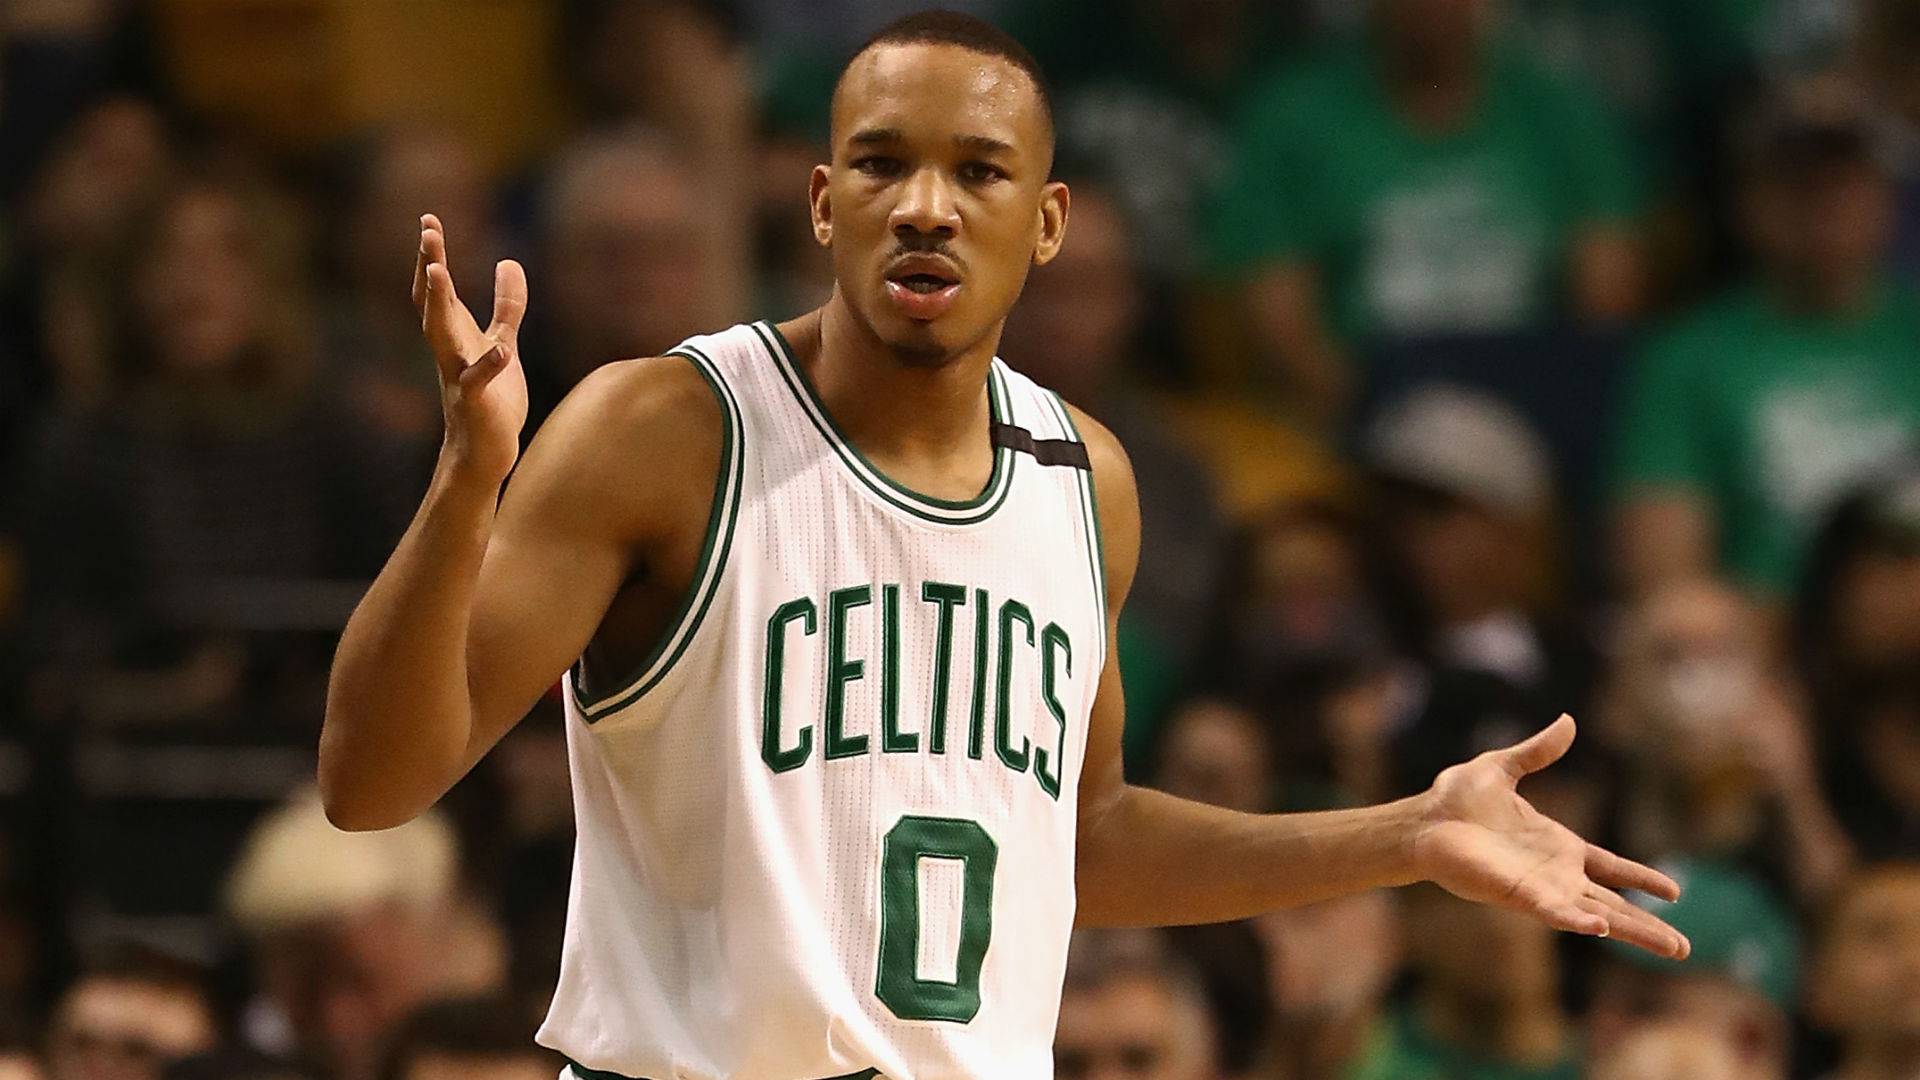 Celtics Trade Avery Bradley To Pistons For Marcus Morris